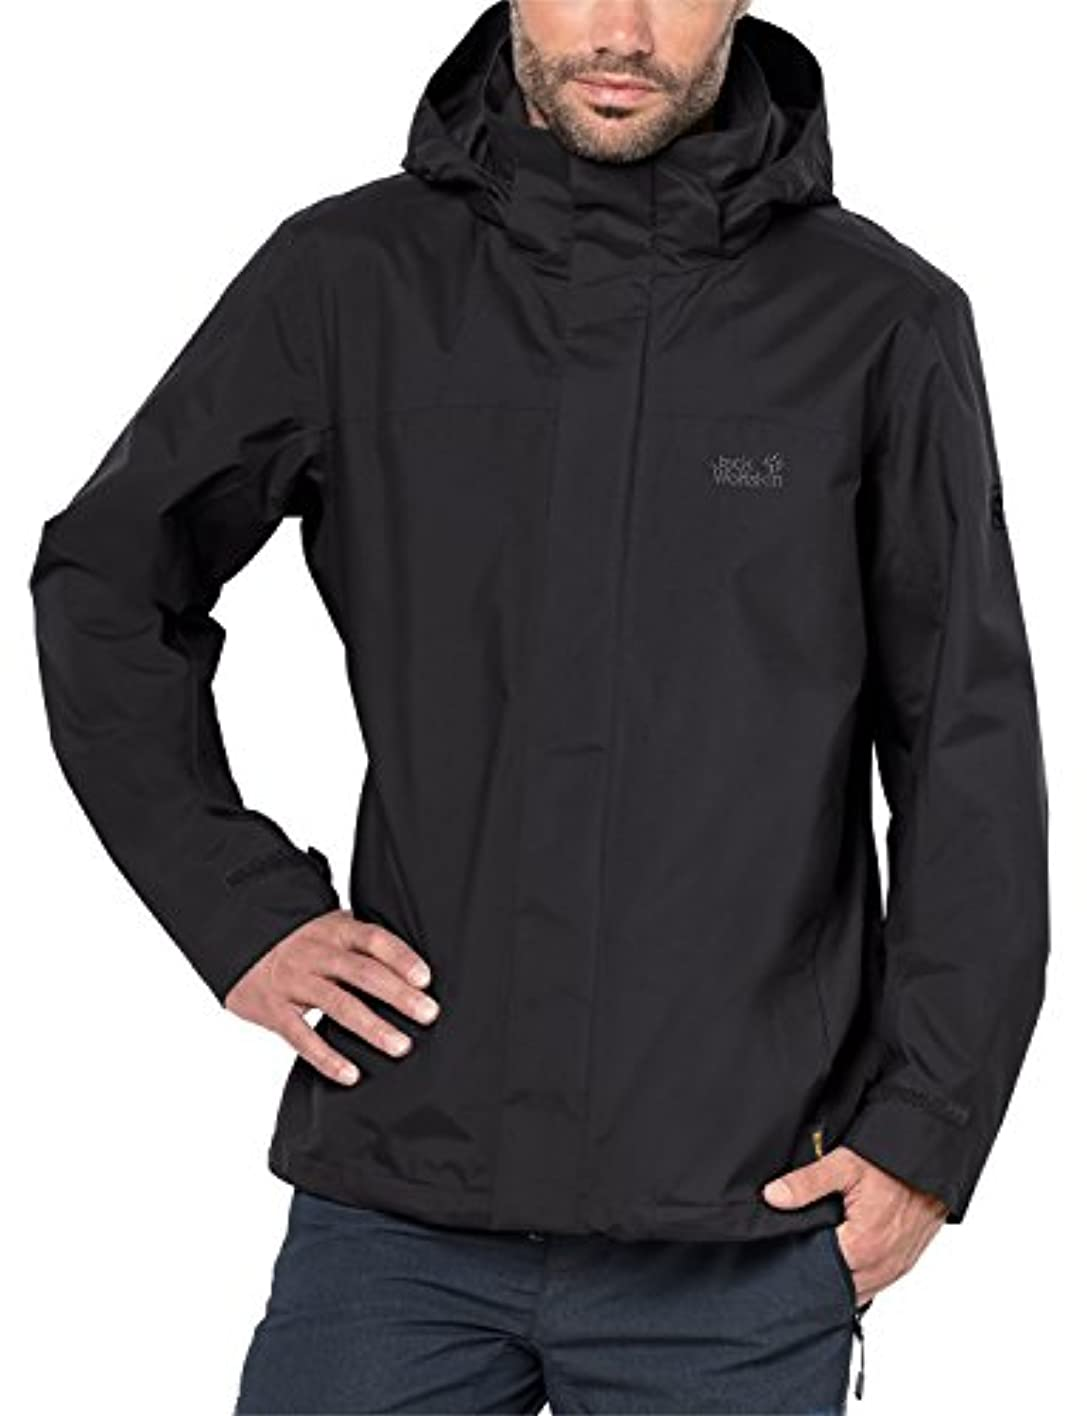 プライム骨折排泄するJACK WOLFSKIN MENS HIGHLAND WATERPROOF JACKET BLACK (LARGE)